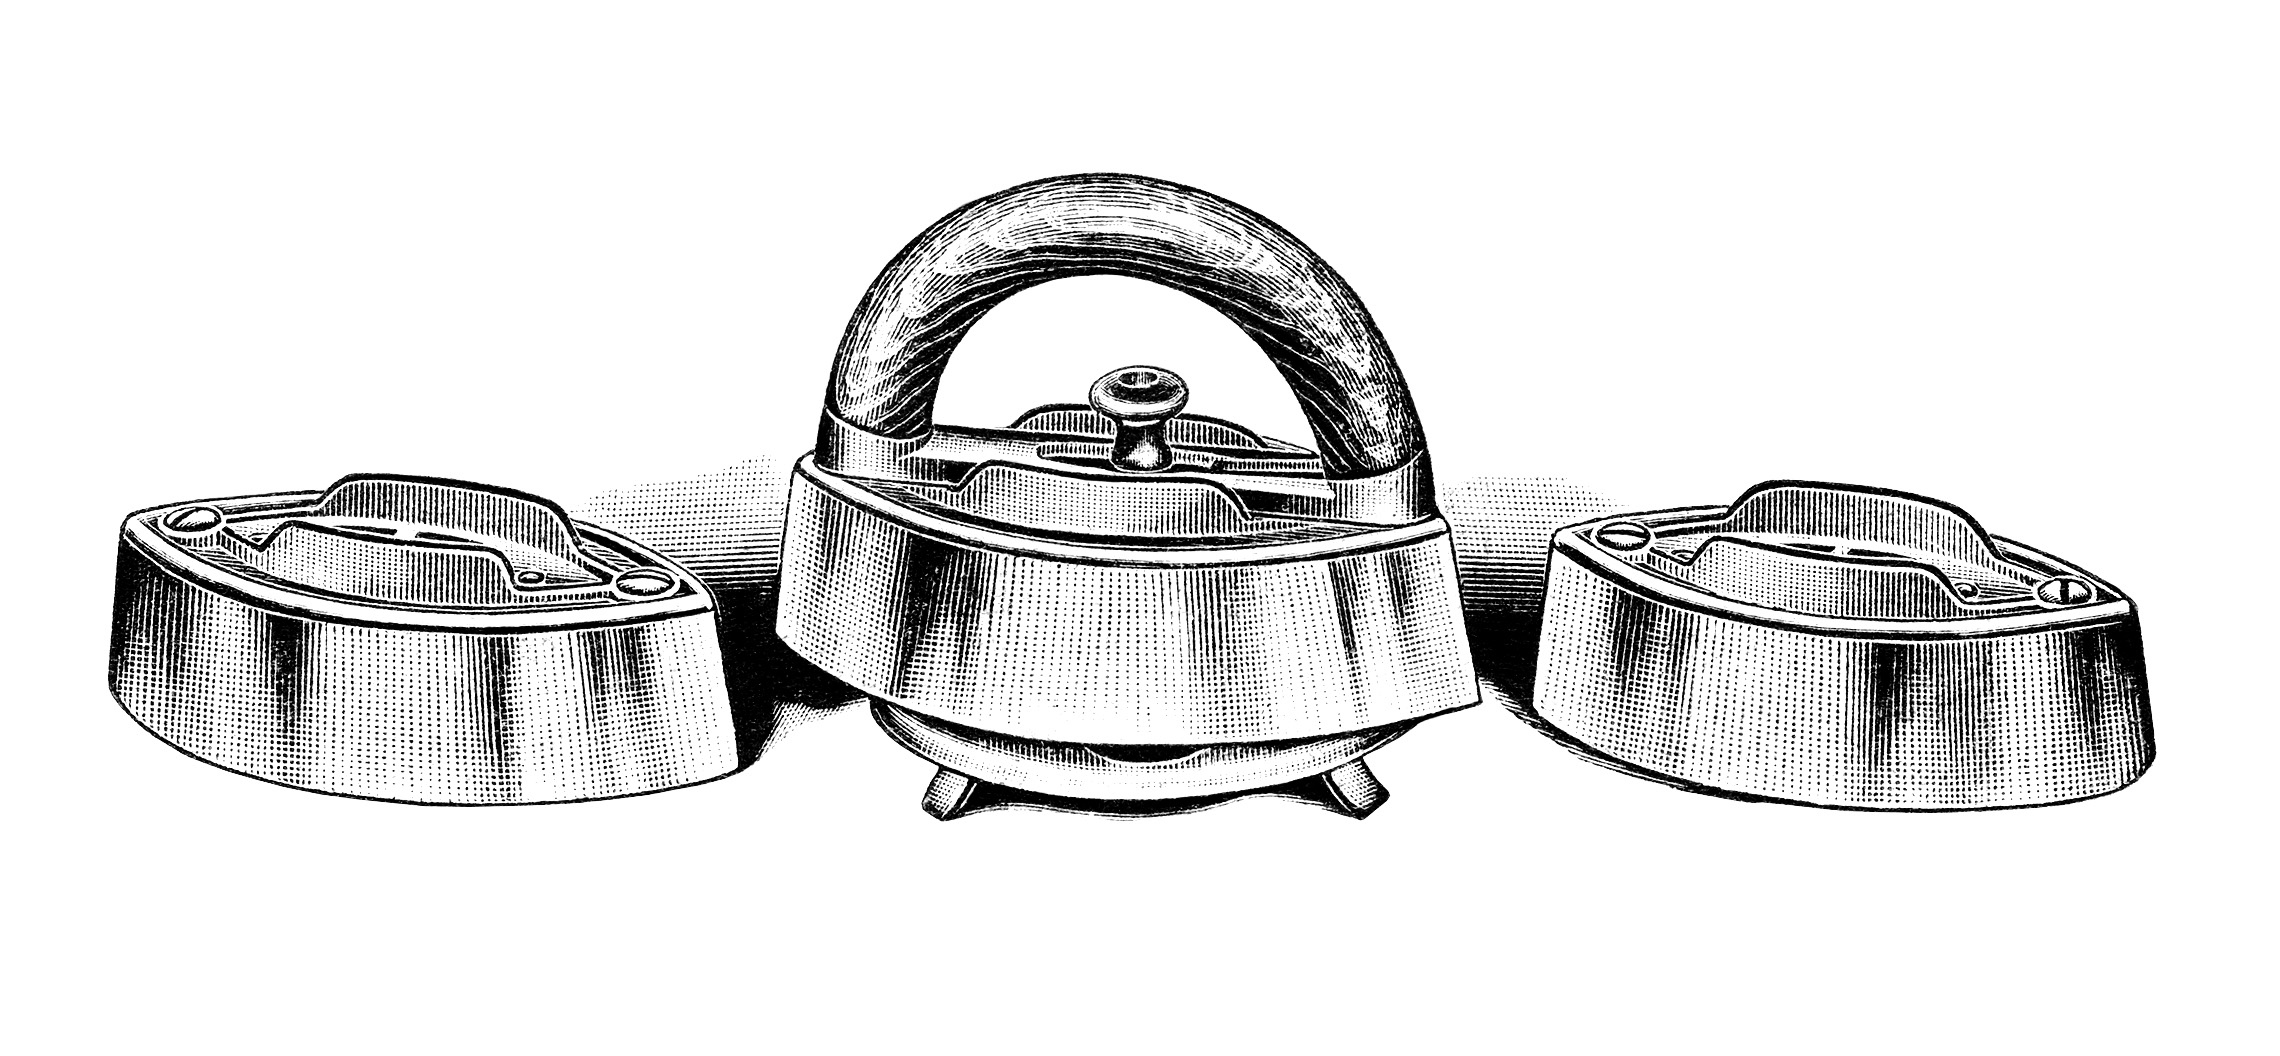 vintage laundry clipart, old fashioned iron image, antique catalog ad, black and white clip art, vintage clothing iron illustration